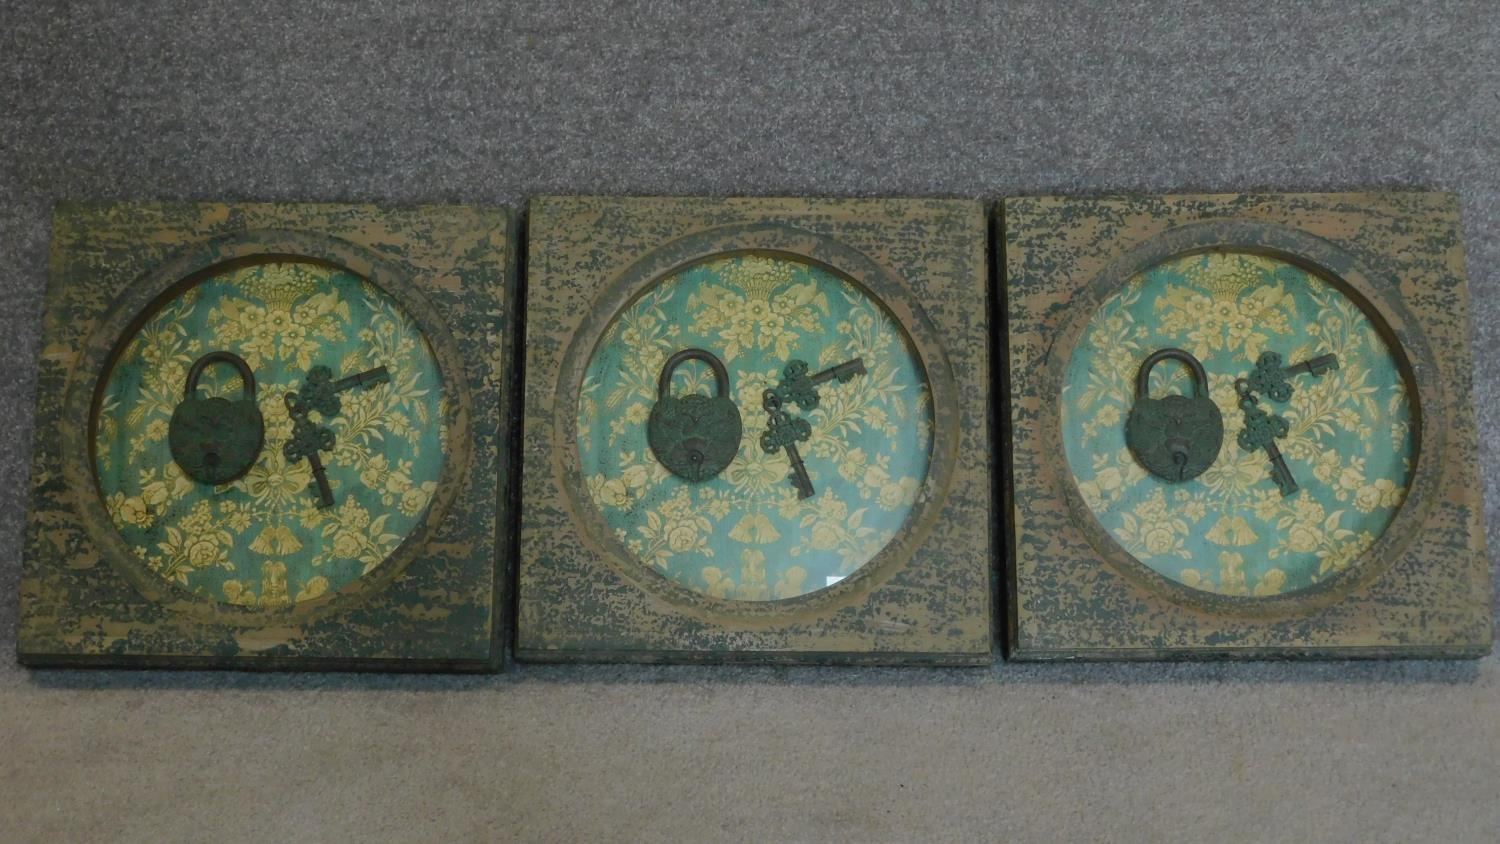 A set of three framed and glazed display cases containing old padlocks and keys. 40x40cm